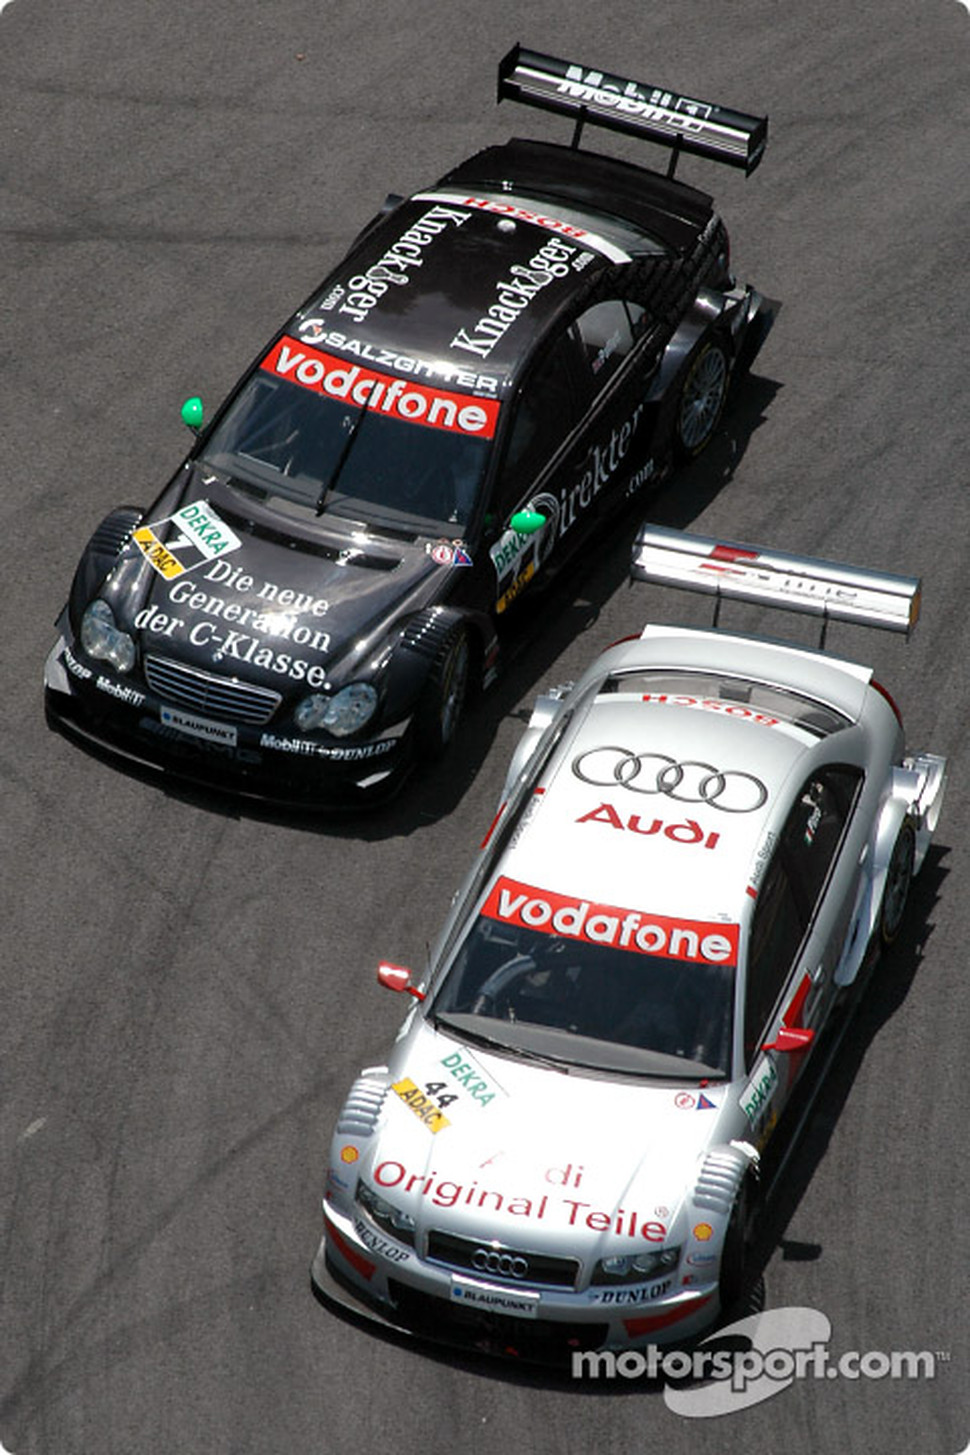 Emanuele Pirro and Gary Paffett